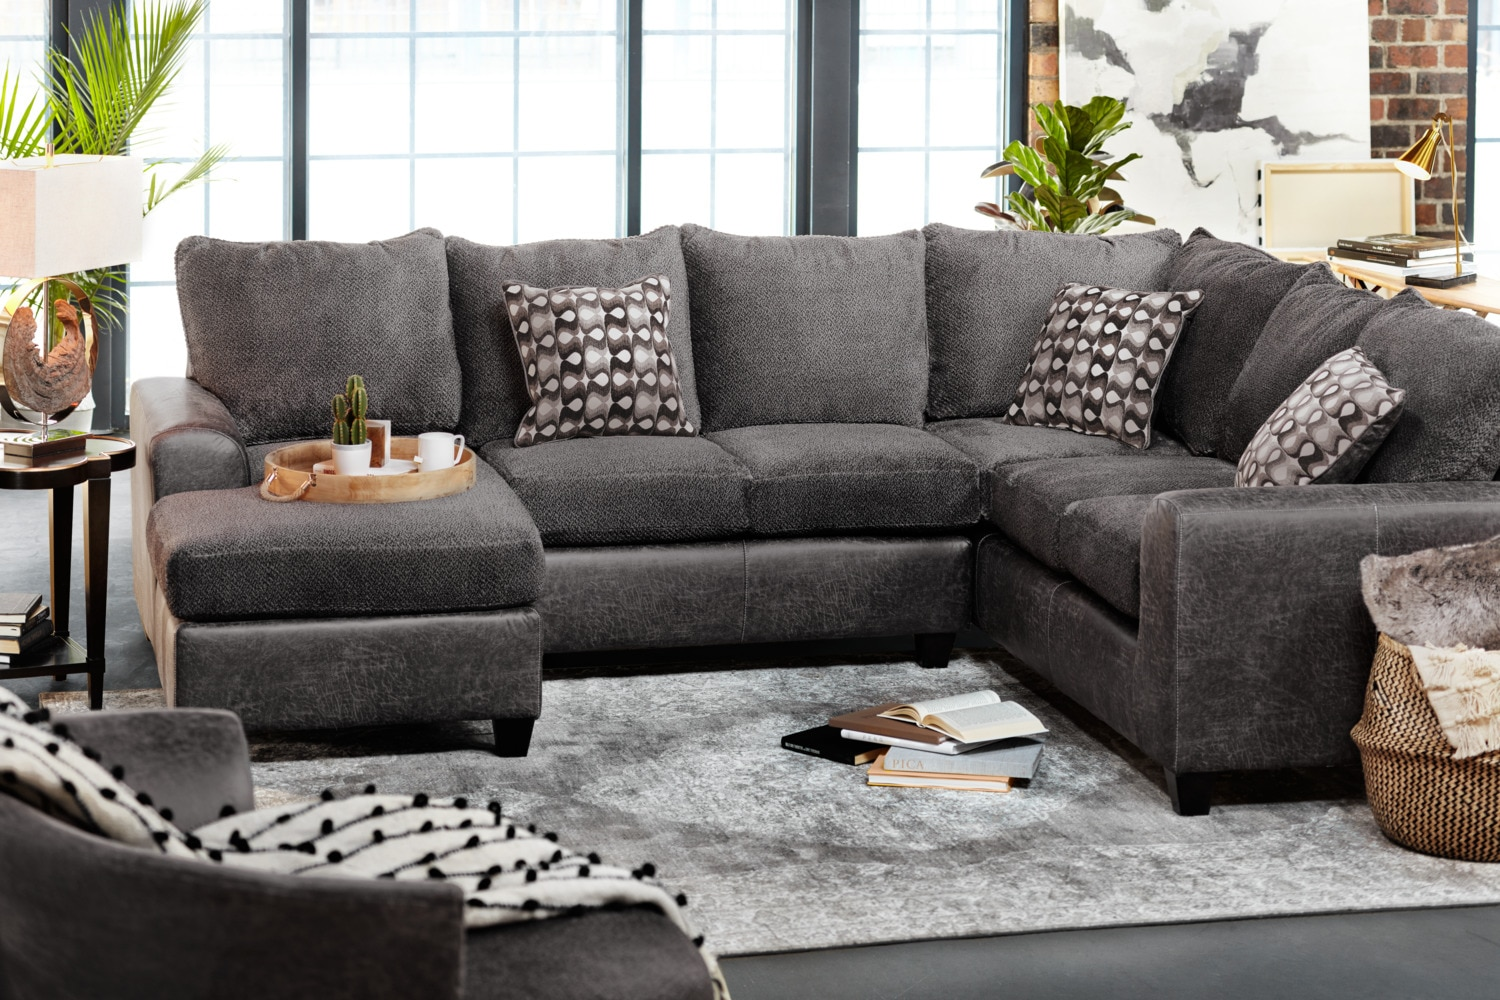 Brando 3Piece Sectional with Modular Chaise  Smoke  Value City Furniture and Mattresses